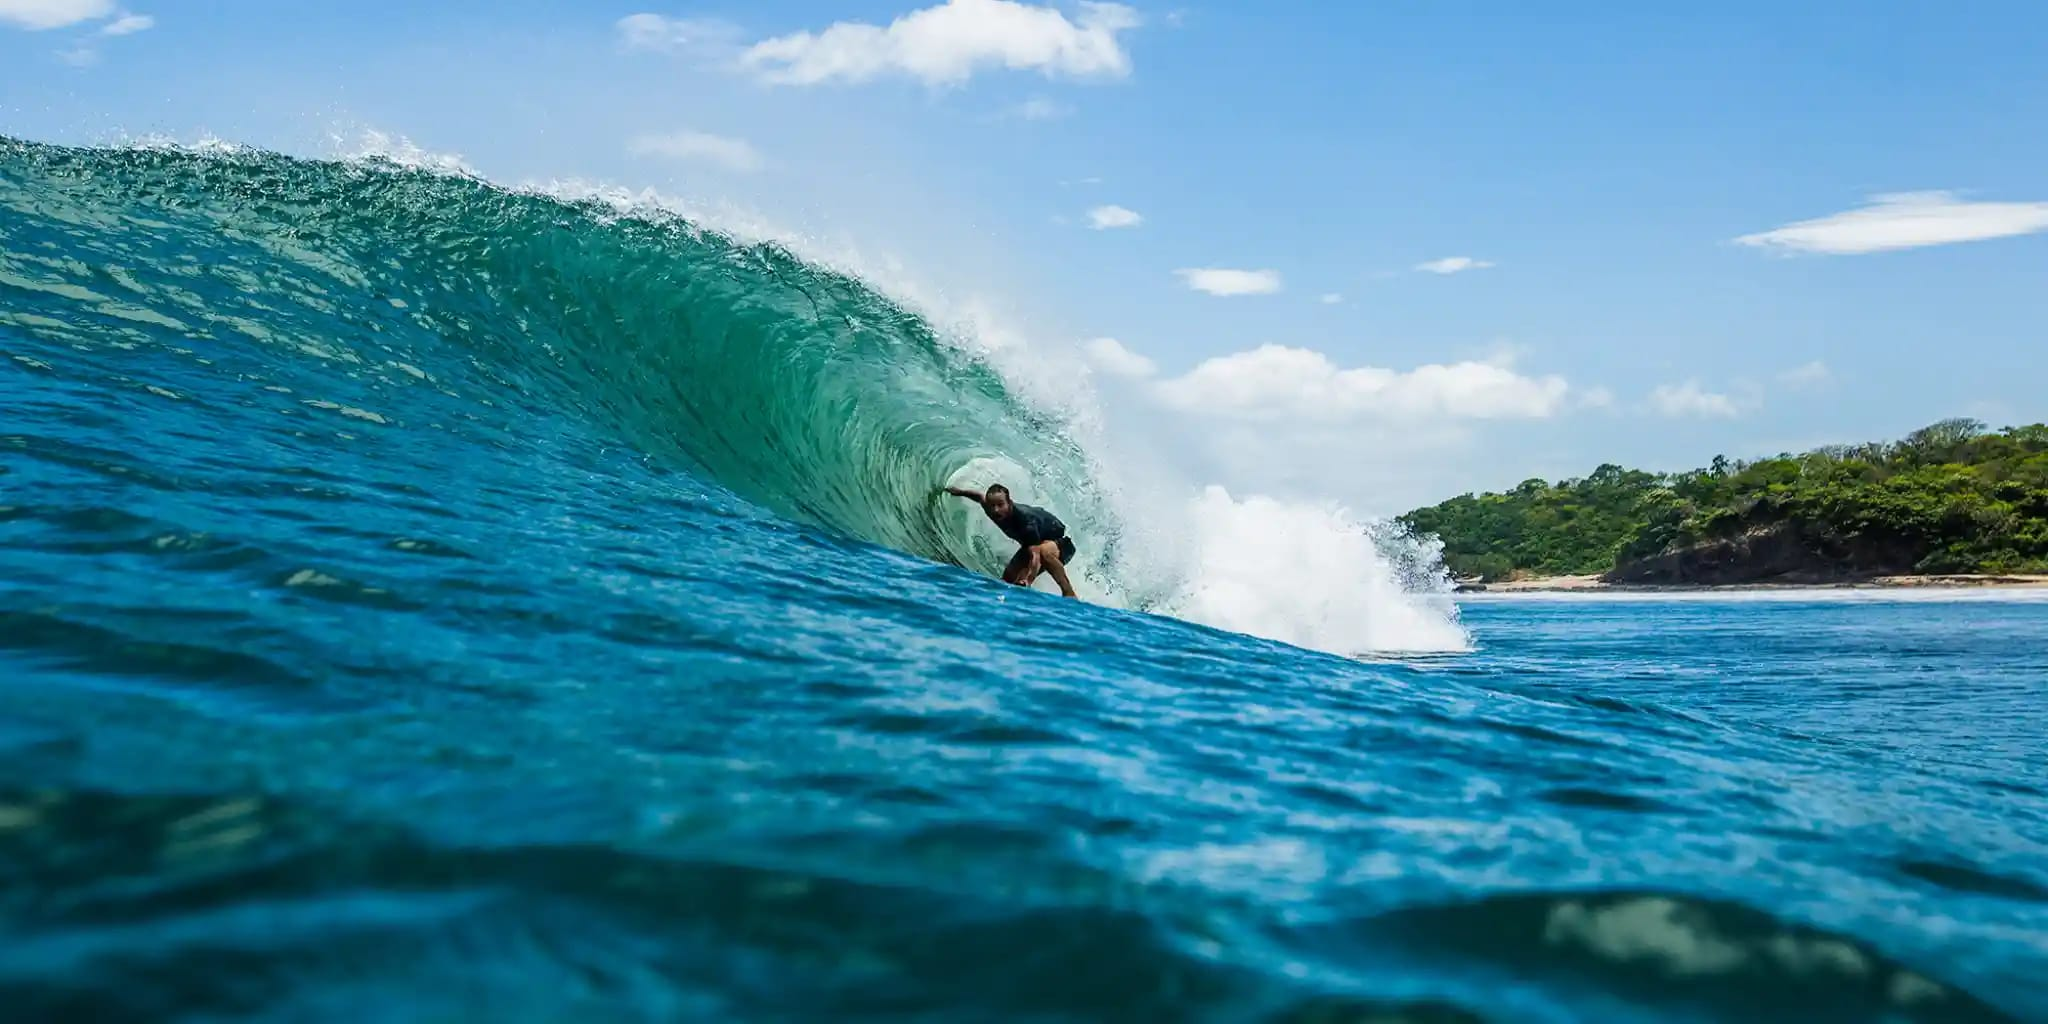 Surfing the Pacific side of Central America.